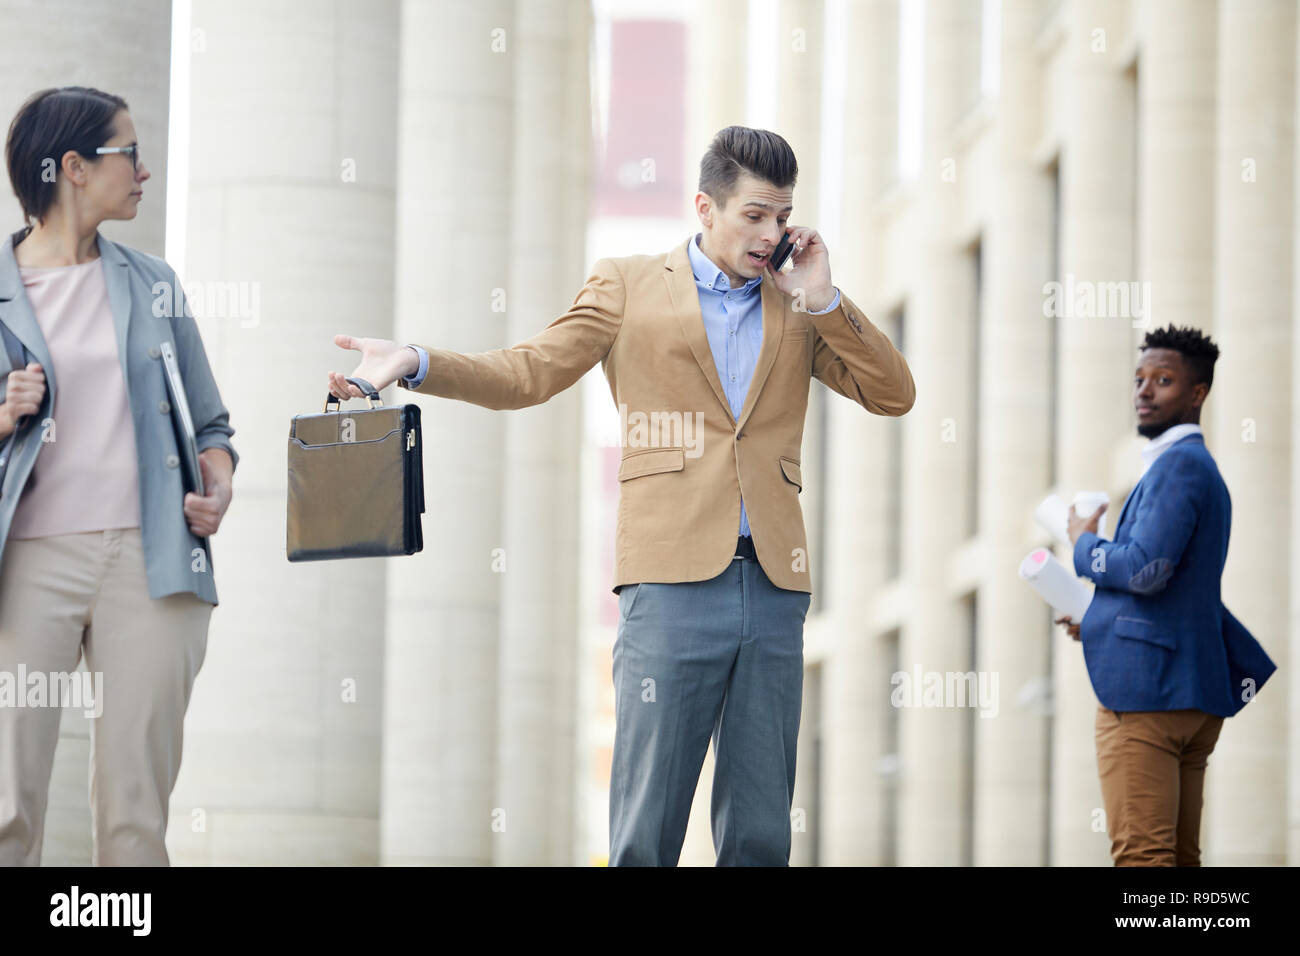 Puzzled businessman talking on phone loudly - Stock Image